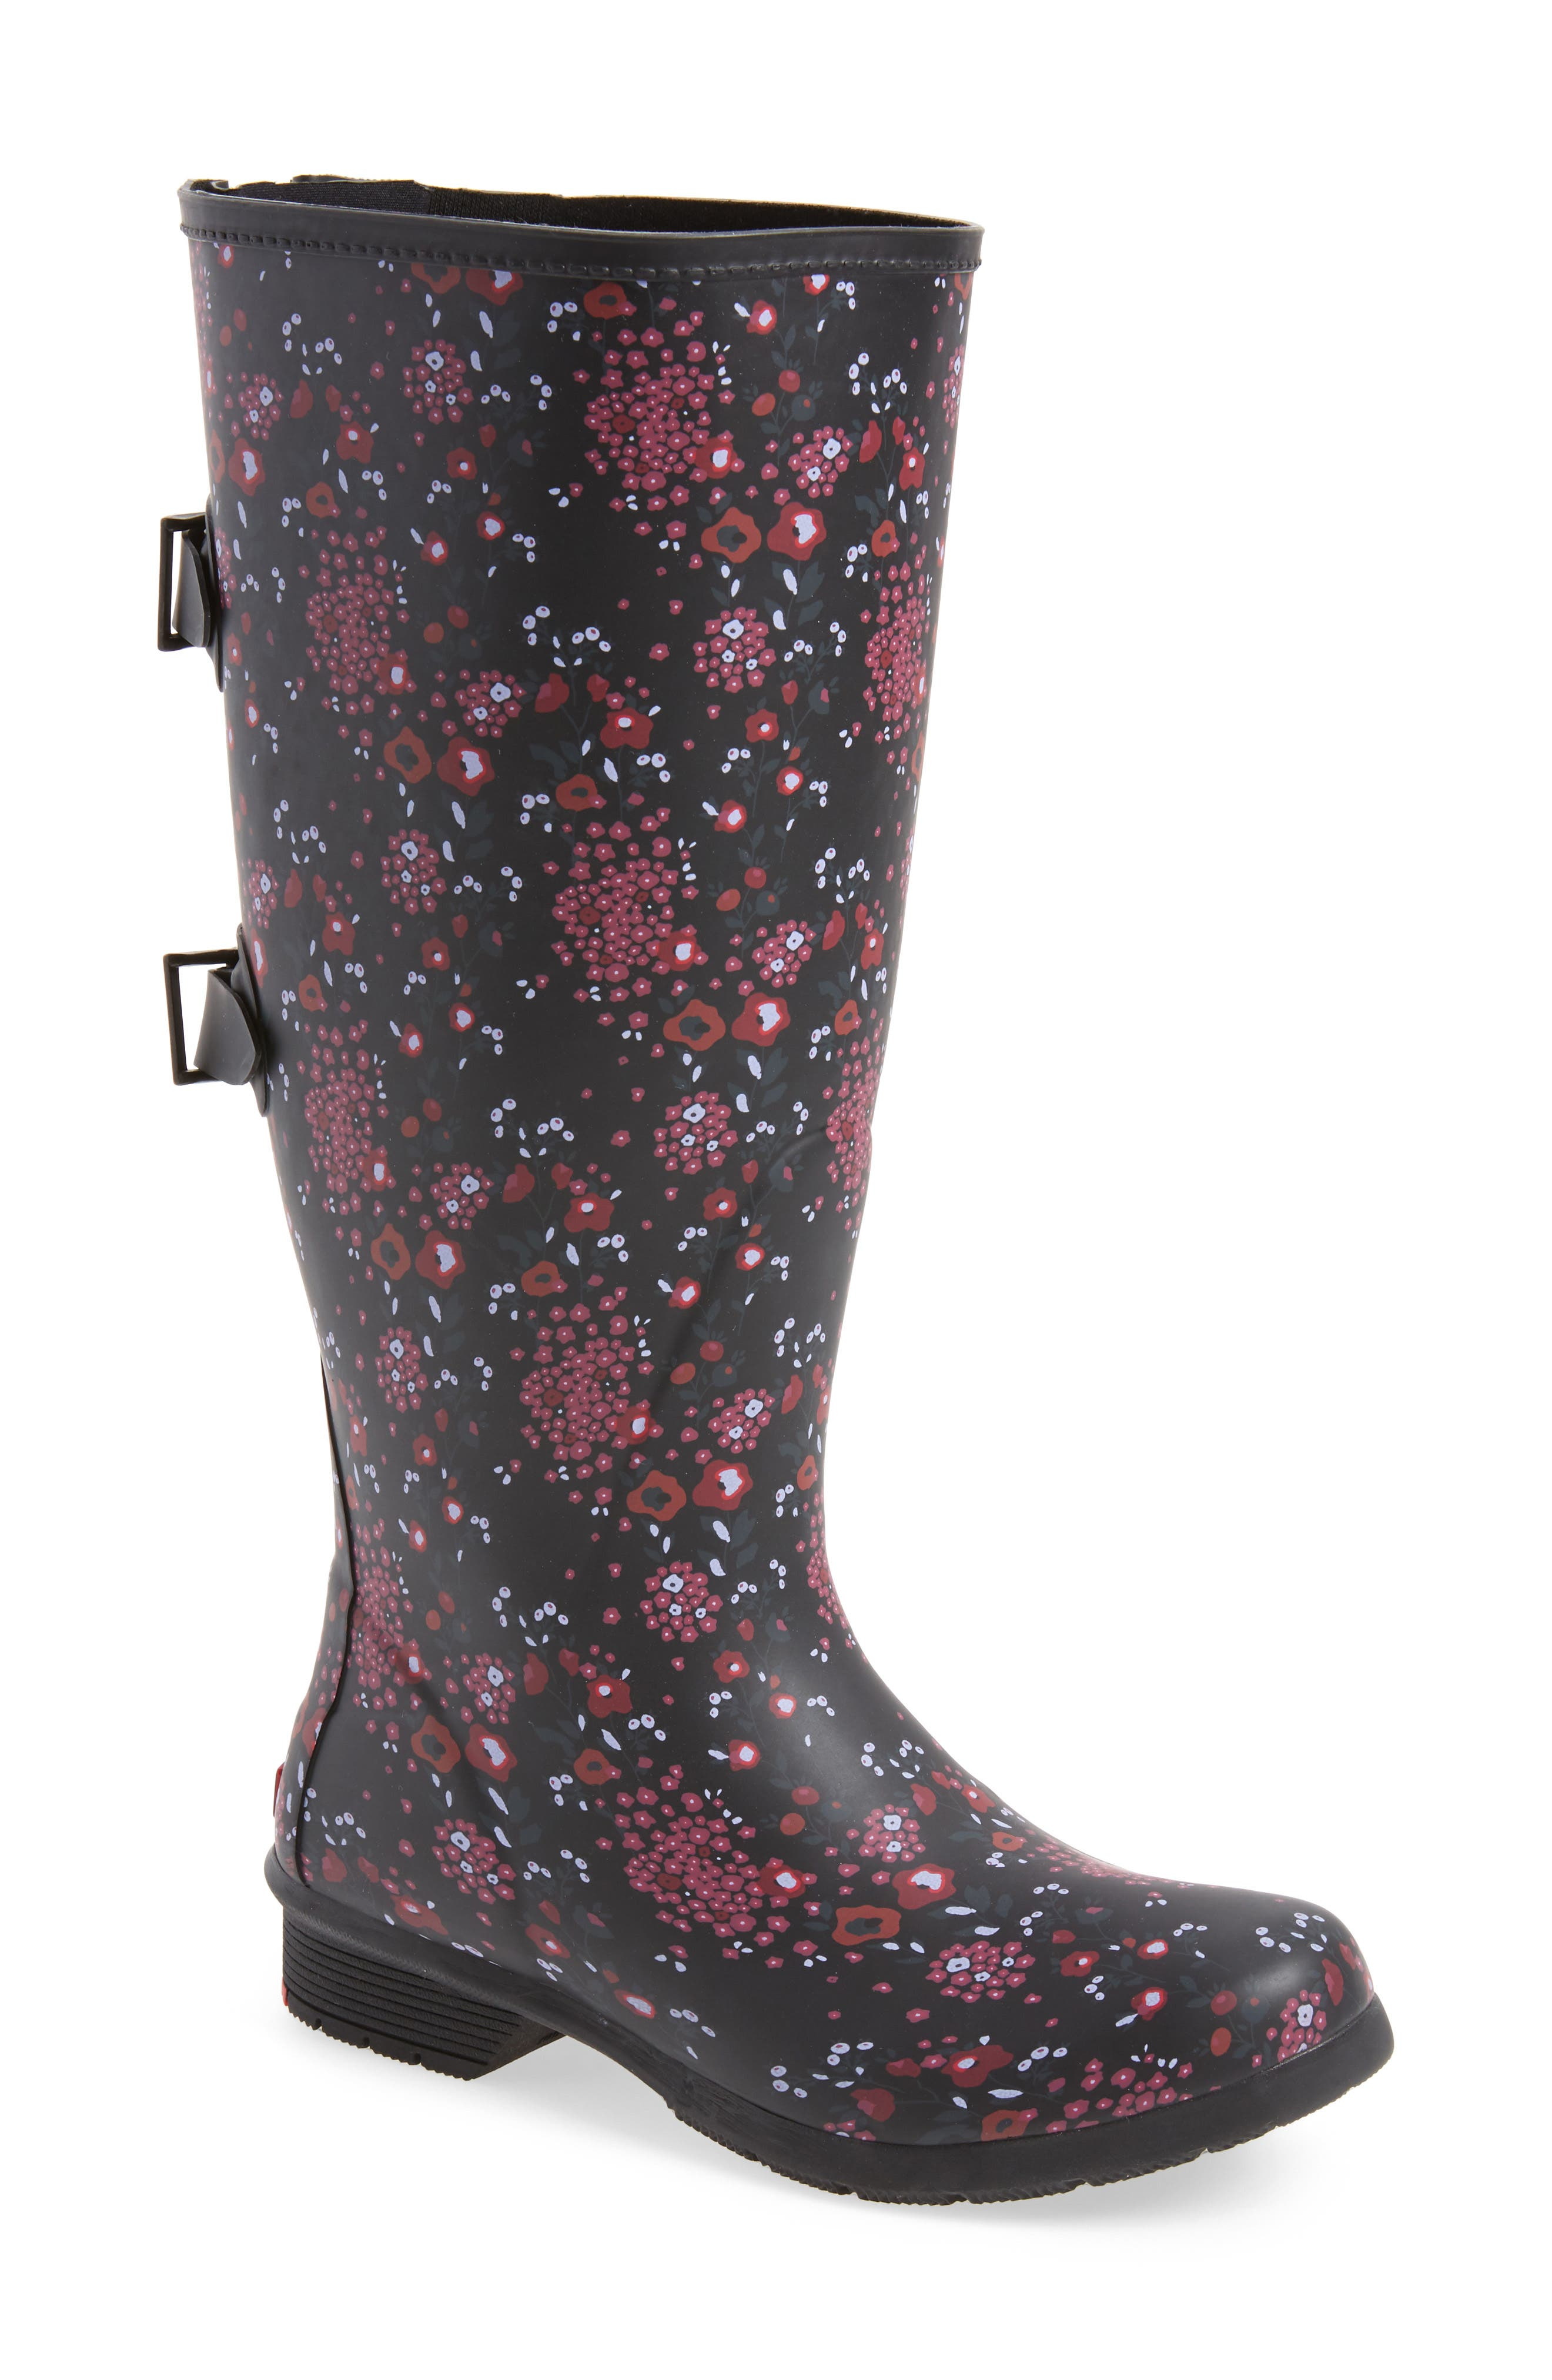 Main Image - Chooka Versa Rain Boot (Women) (Wide Calf)